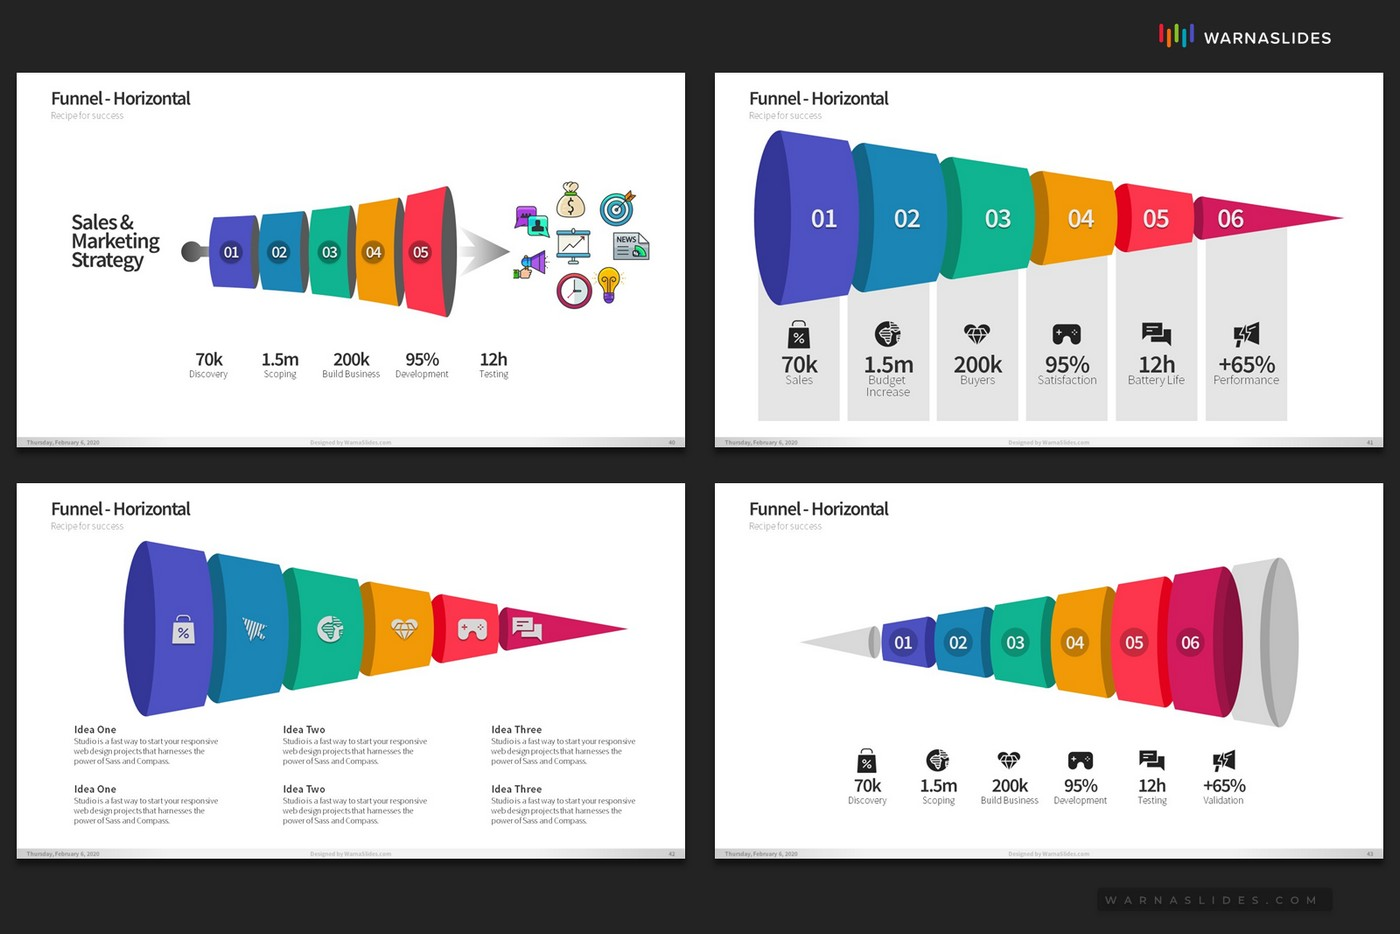 Funnel-Reverse-Funnel-Diagram-PowerPoint-Template-for-Business-Pitch-Deck-Professional-Creative-PowerPoint-Icons-012